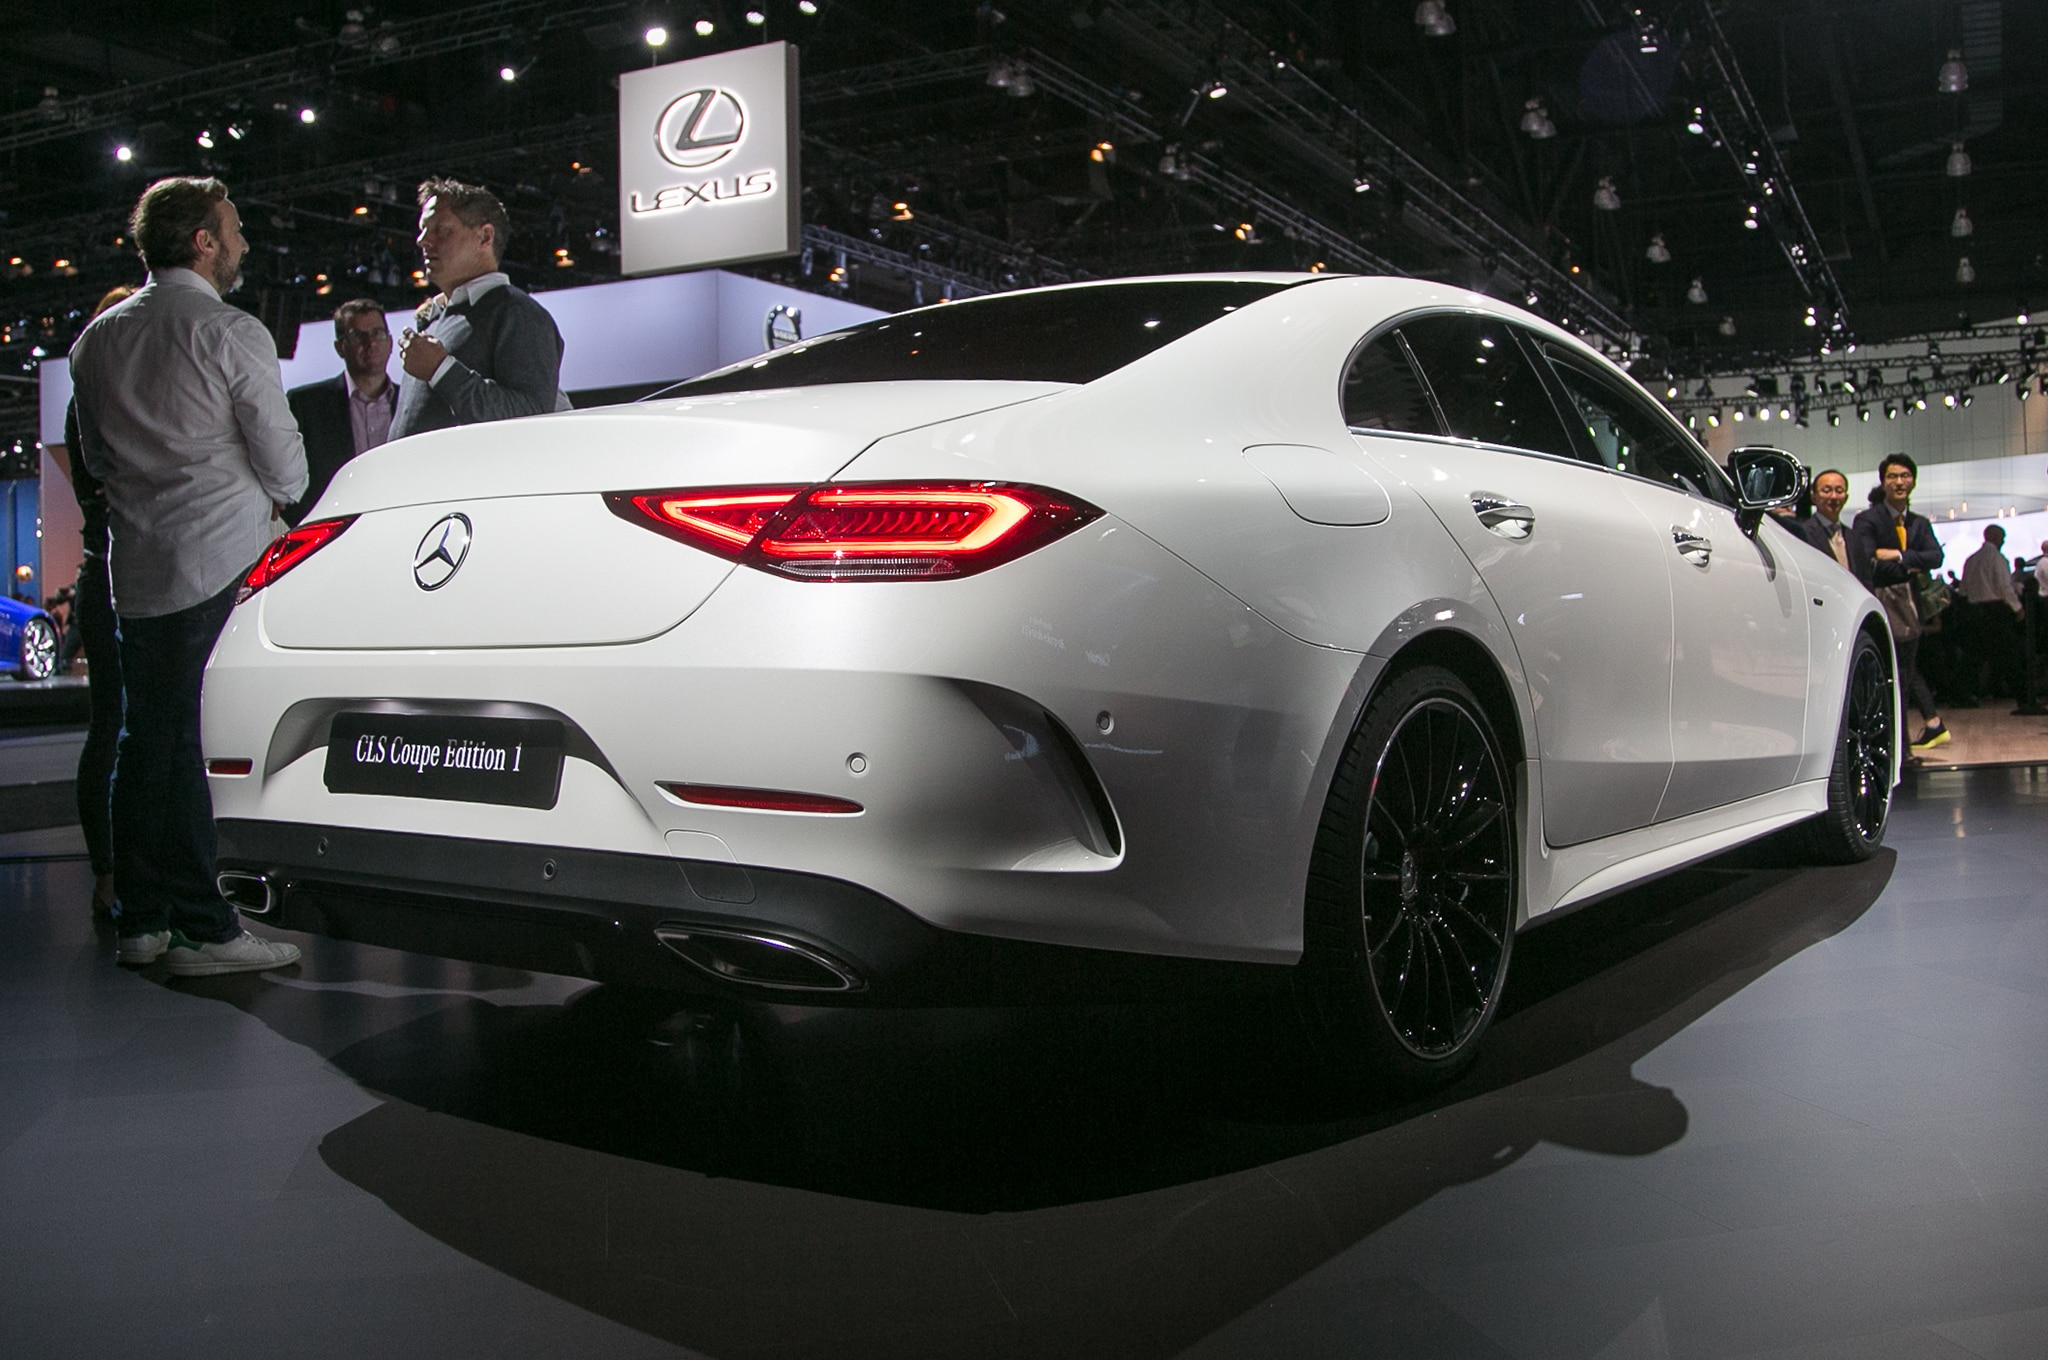 2019 Mercedes Benz Cls450 Brings Inline Six Power To The States